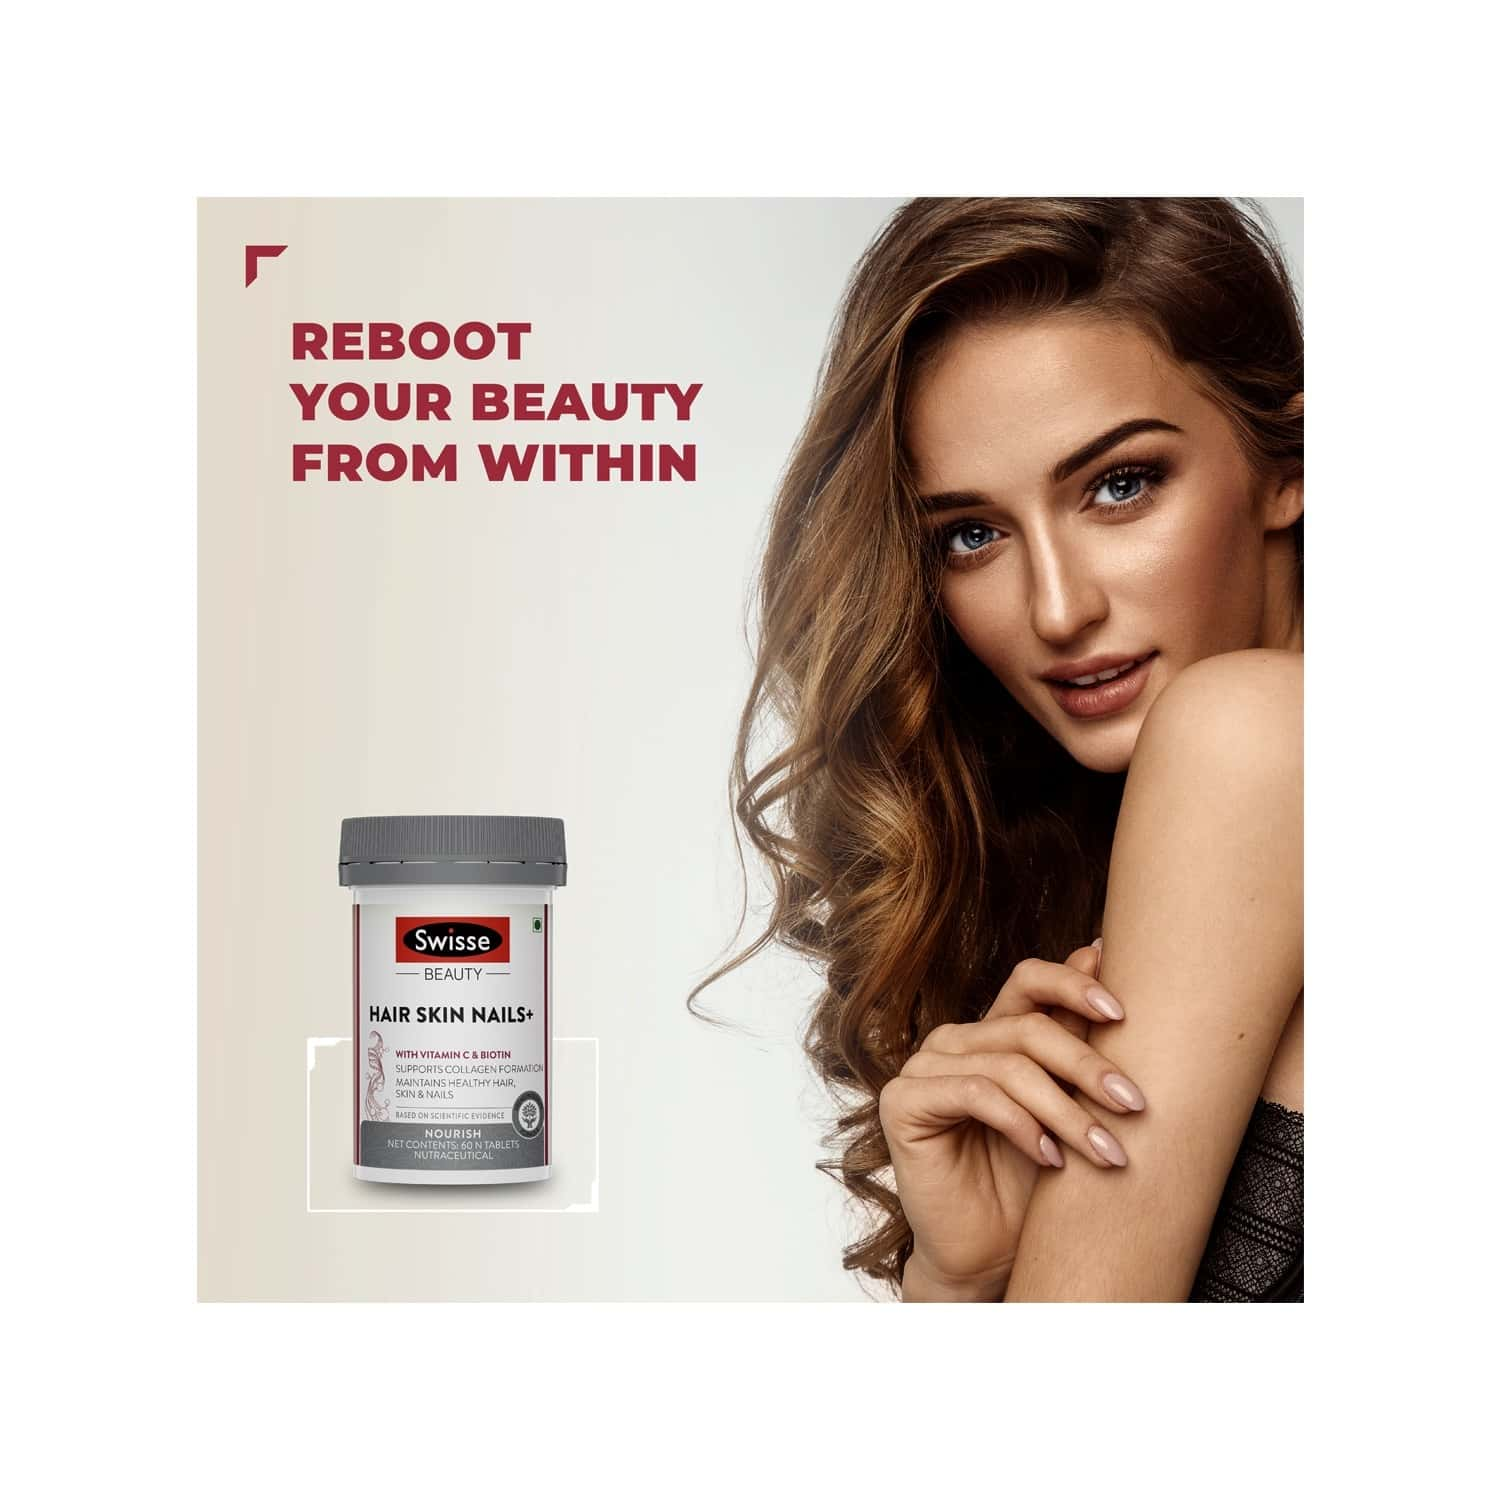 Swisse Beauty Hair Skin Nails+ With Vitamin C And Biotin For Healthy Hair Radiant Skin And Stronger Nails - 60 Tablets